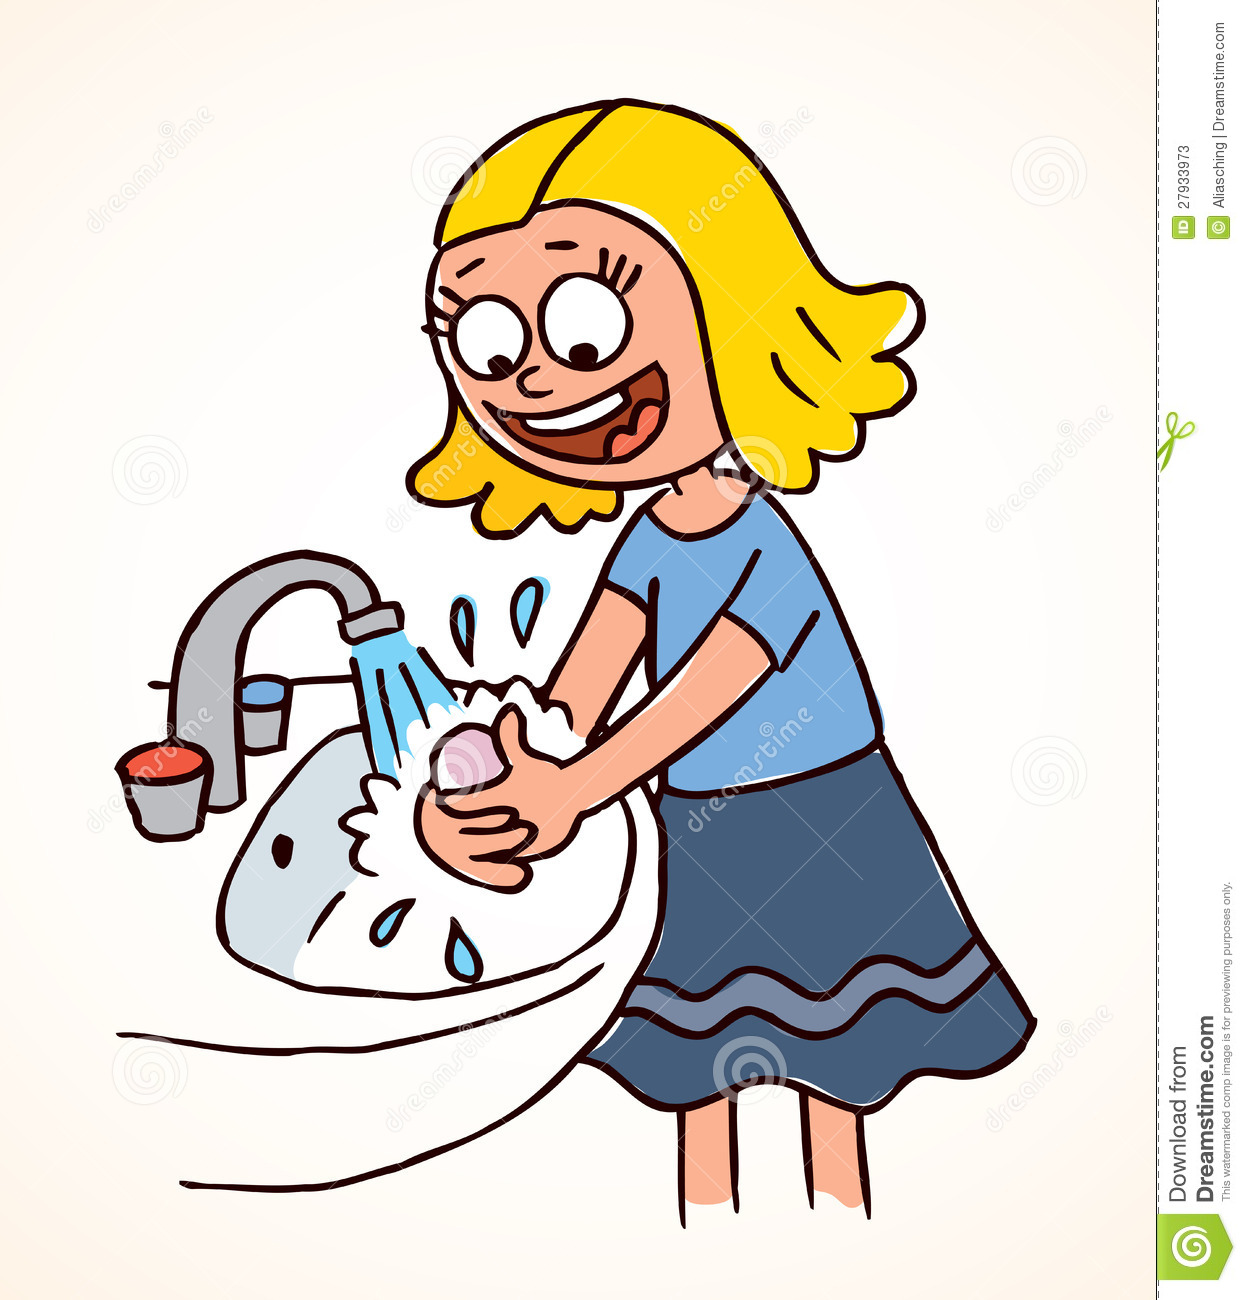 Children Washing Hands Clipart - ClipArt Best